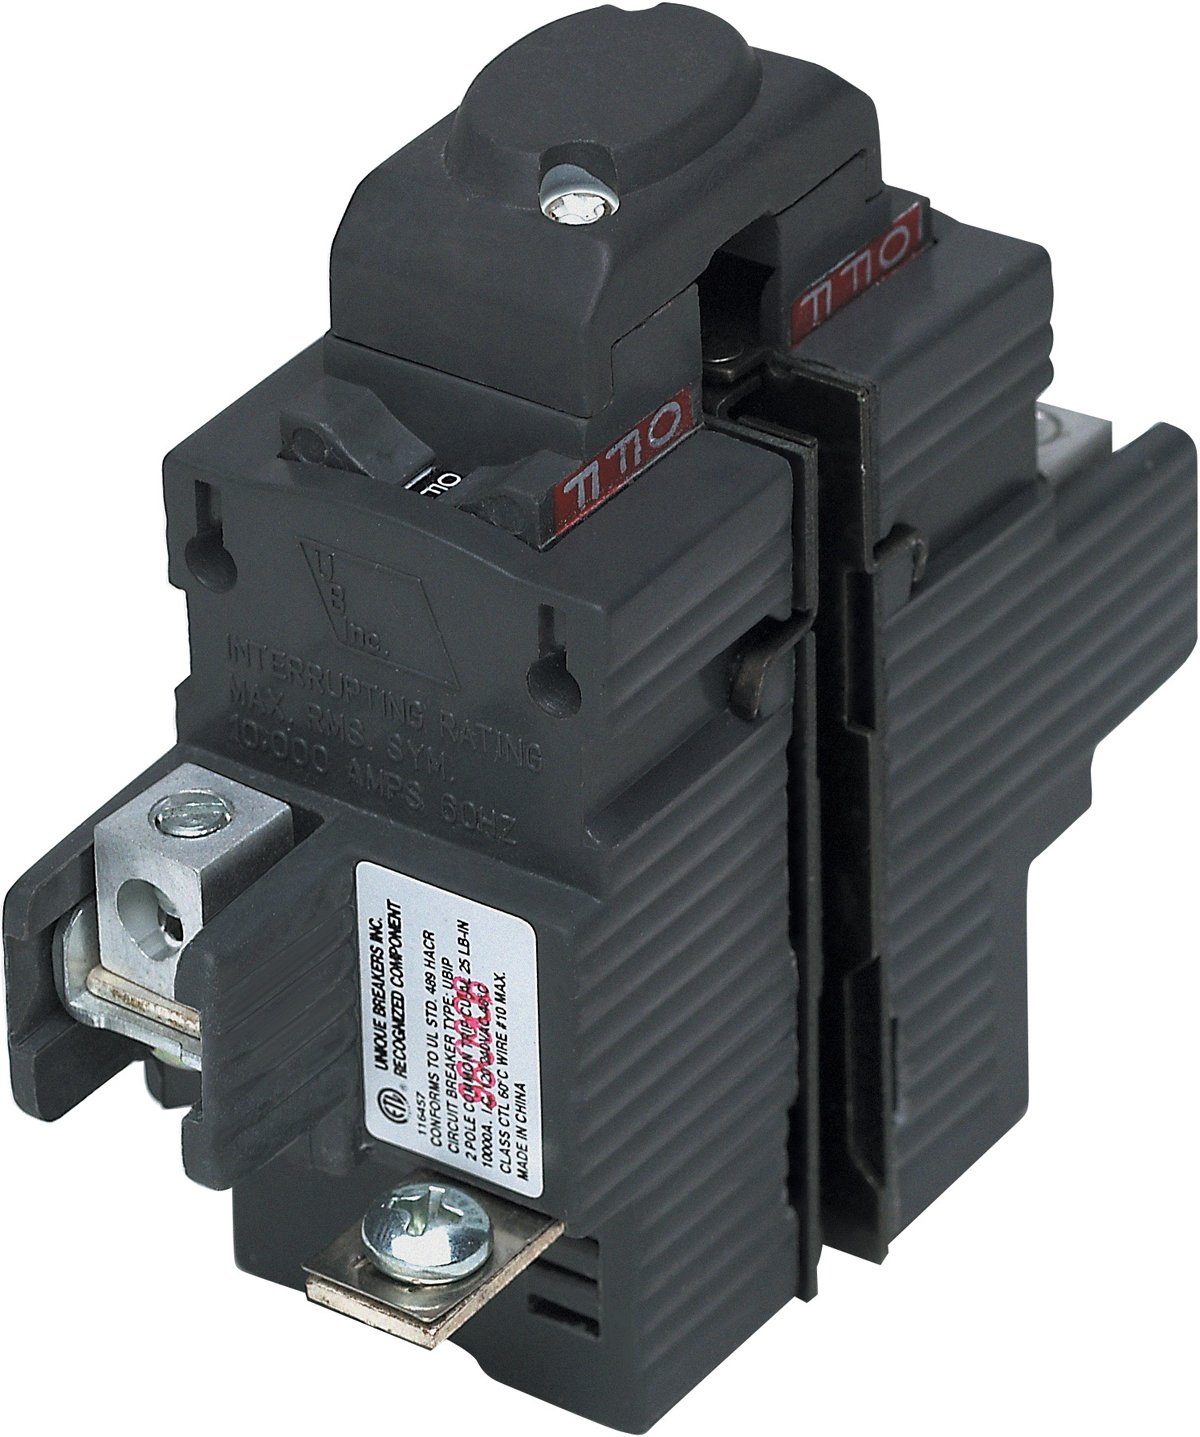 UBIP260-New Pushmatic P260 Replacement. Two Pole 60 Amp Circuit Breaker Manufactured by Connecticut Electric.